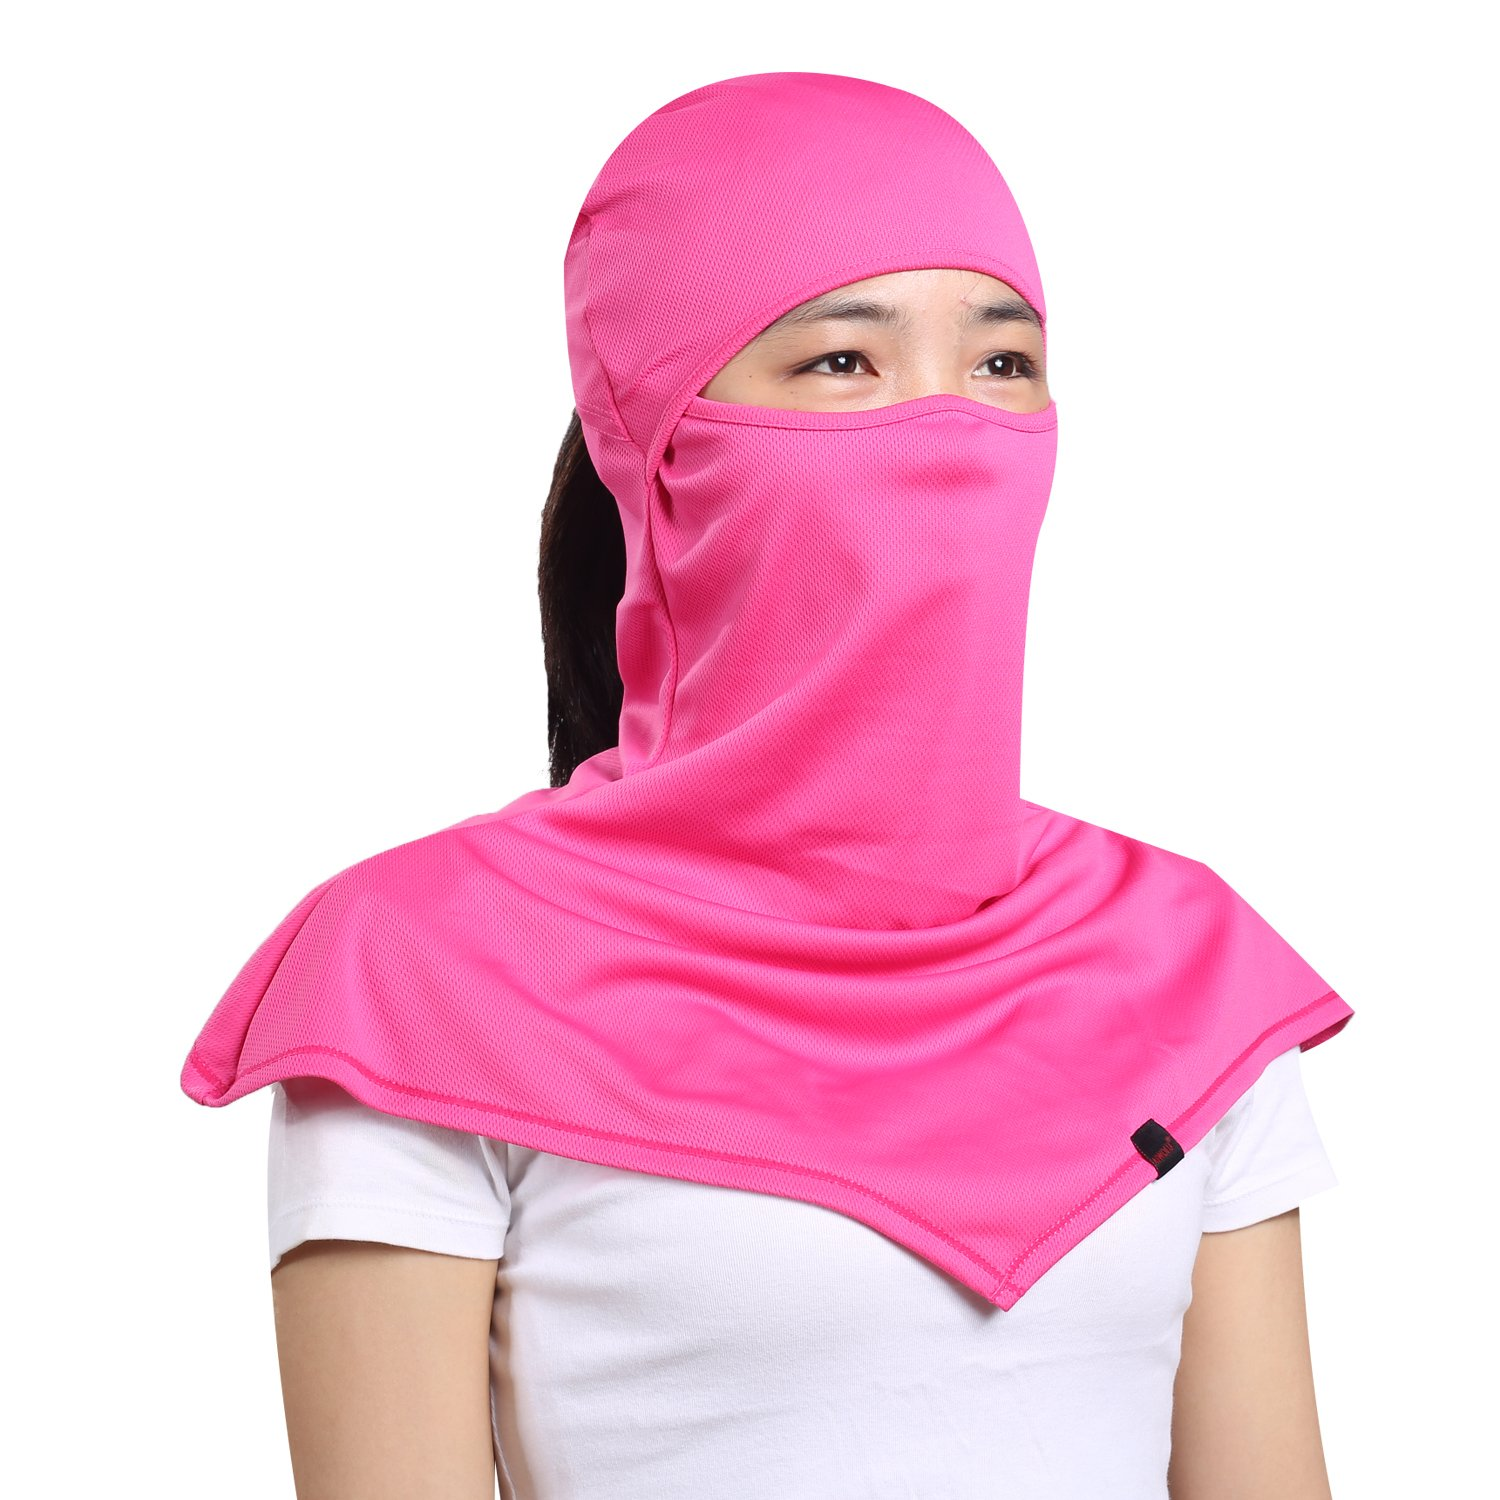 AIWOLU Balaclava for Women- Windproof and Dust Moisture Wicking Women's Full Face Mask Longer Elastic Breathable Neck Cover Hood For Cycling & Leisure Sports